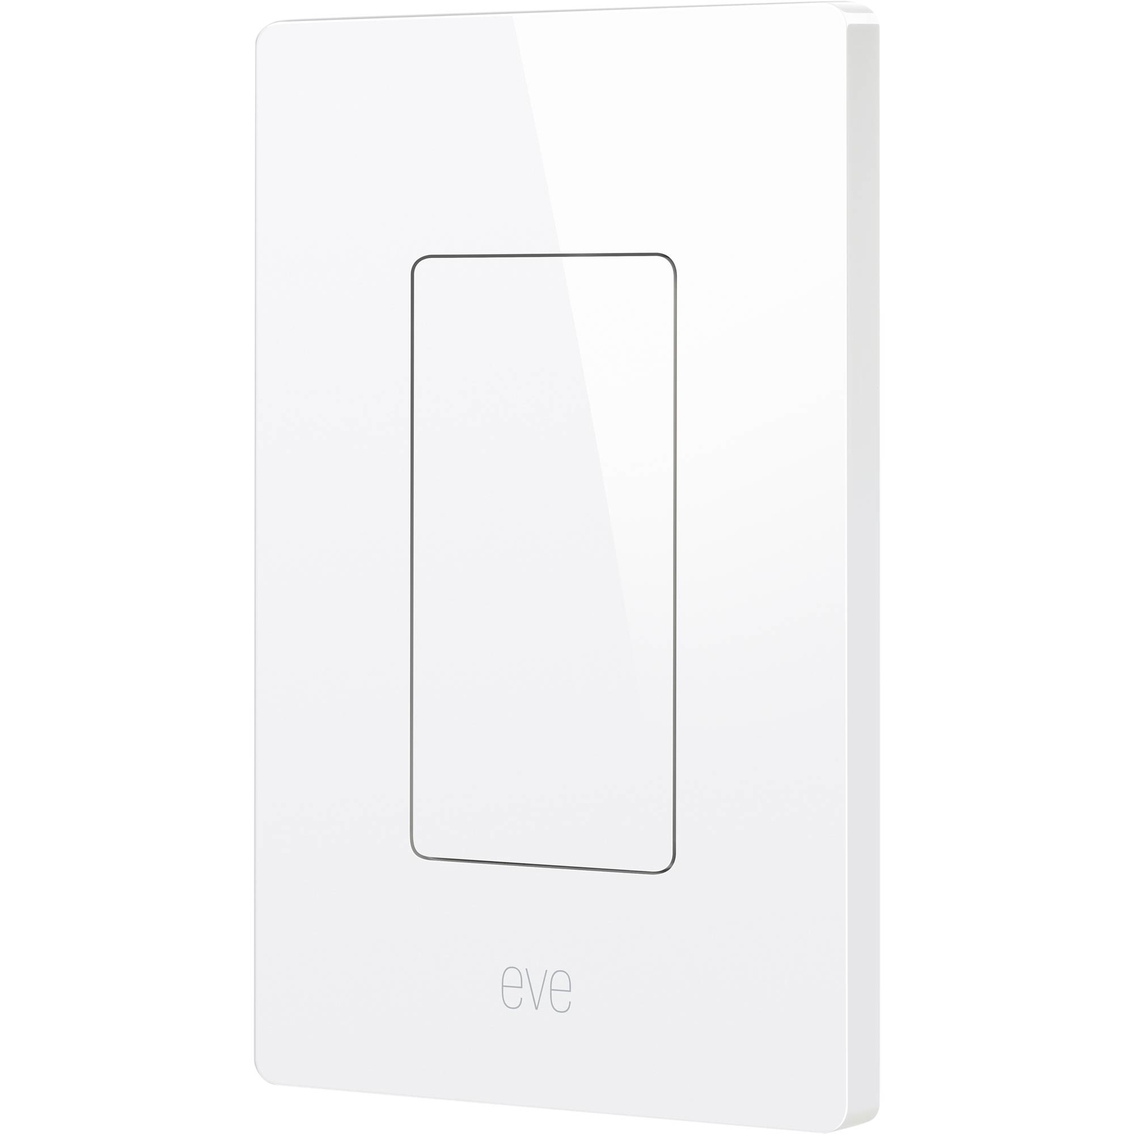 Elgato Eve Light Switch Connect Wall Switch | Smart Energy ...